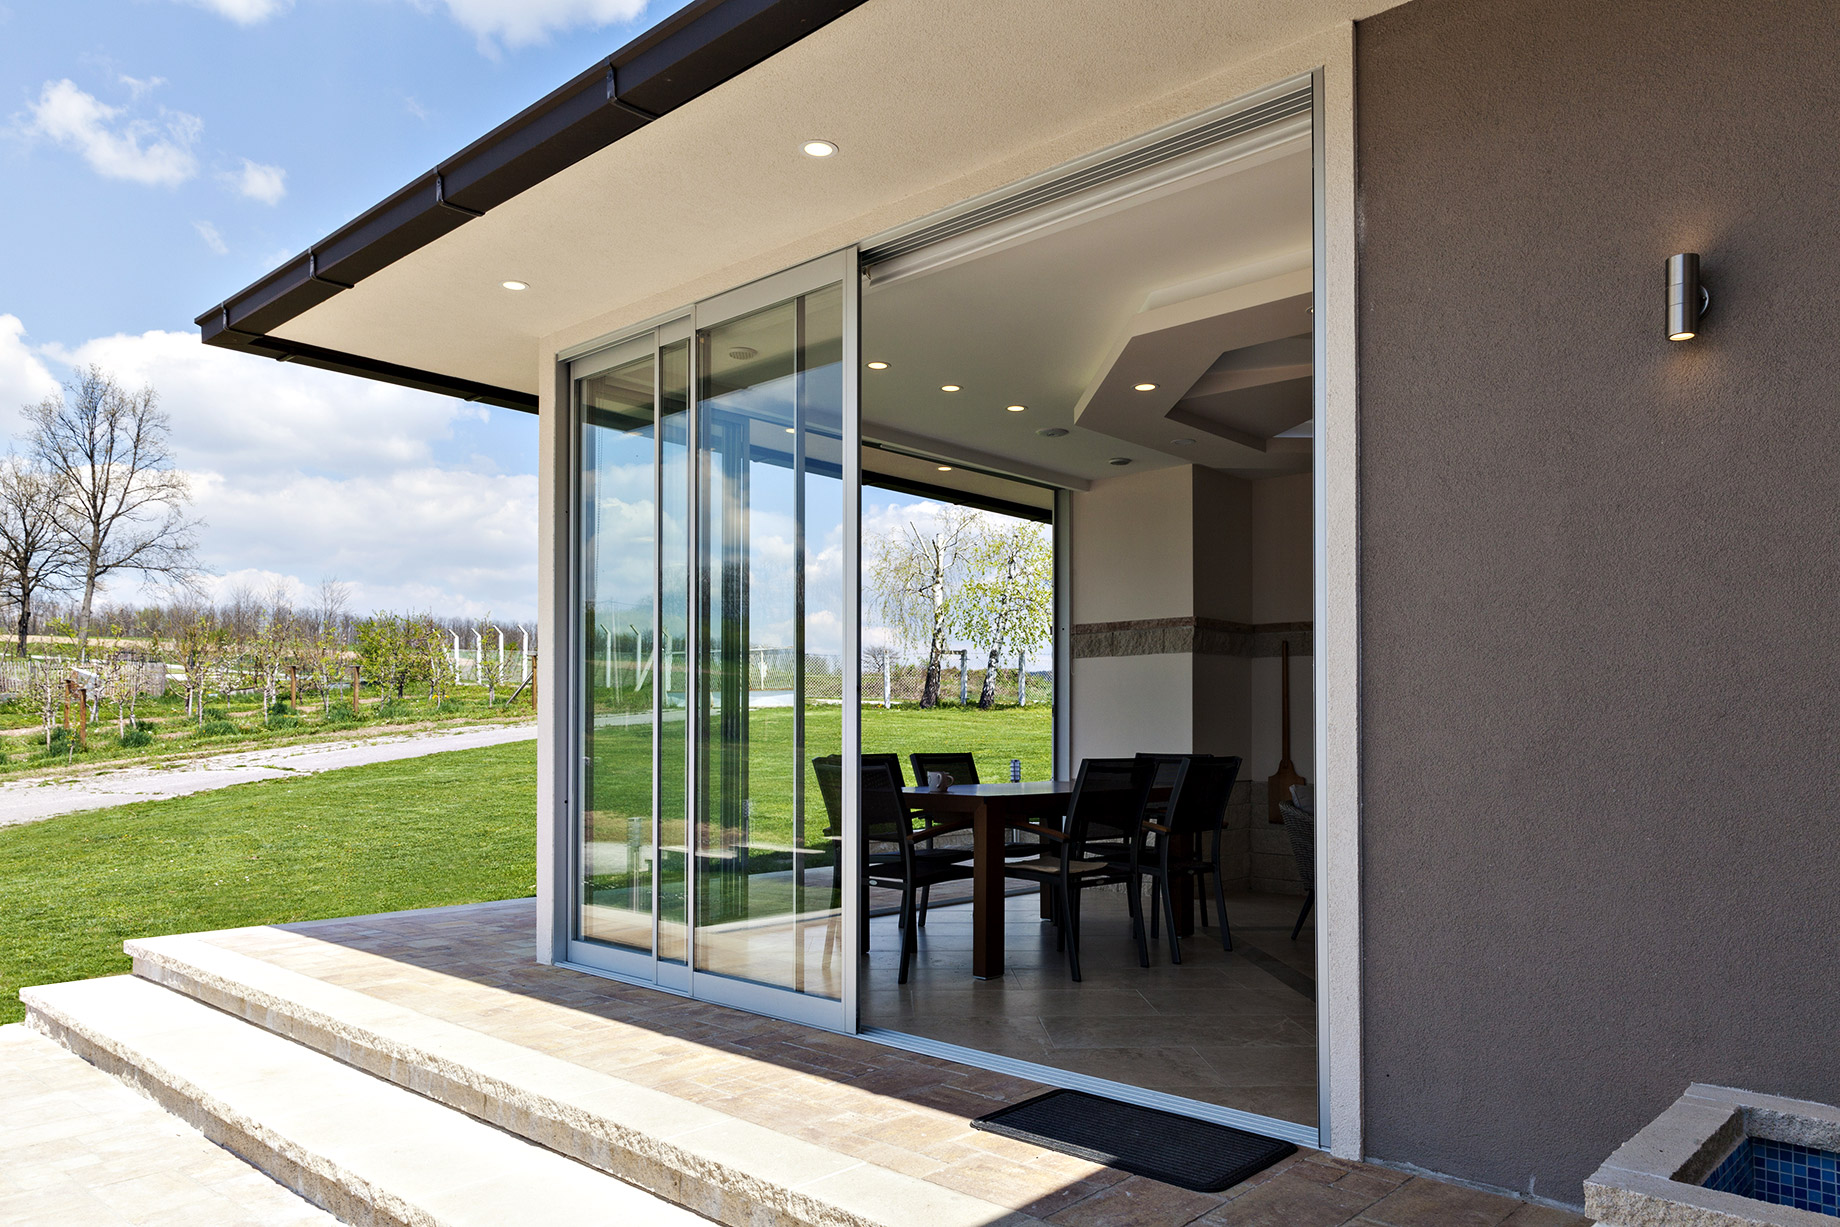 Glazed Terrace Patio Glass Sliding Door in the Countryside